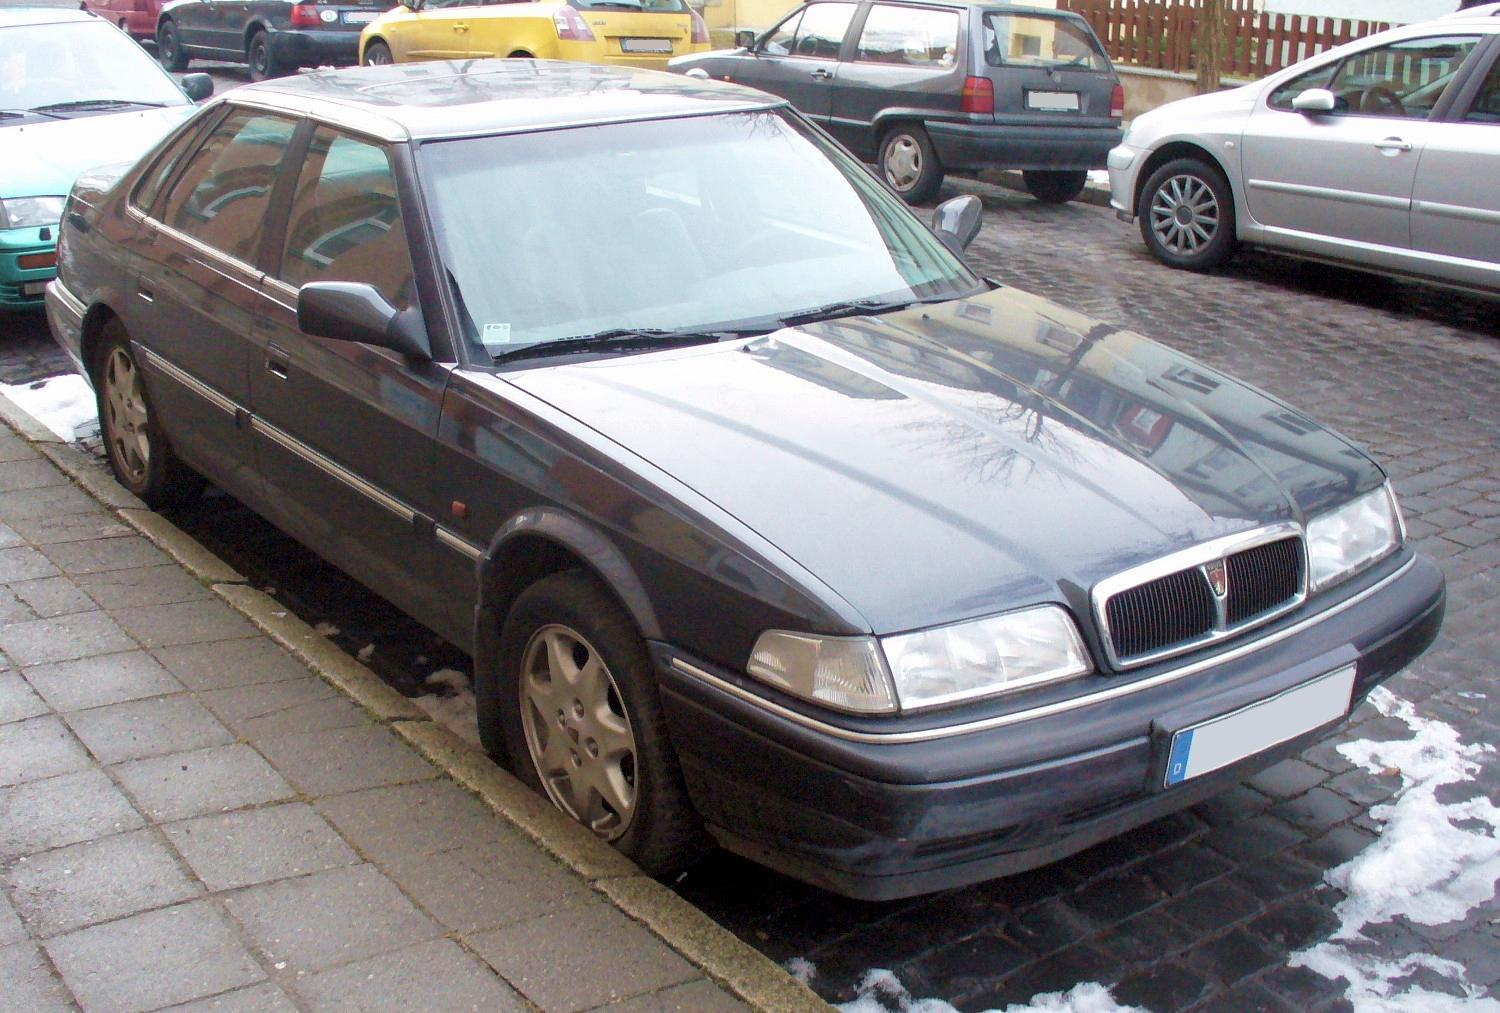 File:Rover 820 Si.JPG - Wikimedia Commons